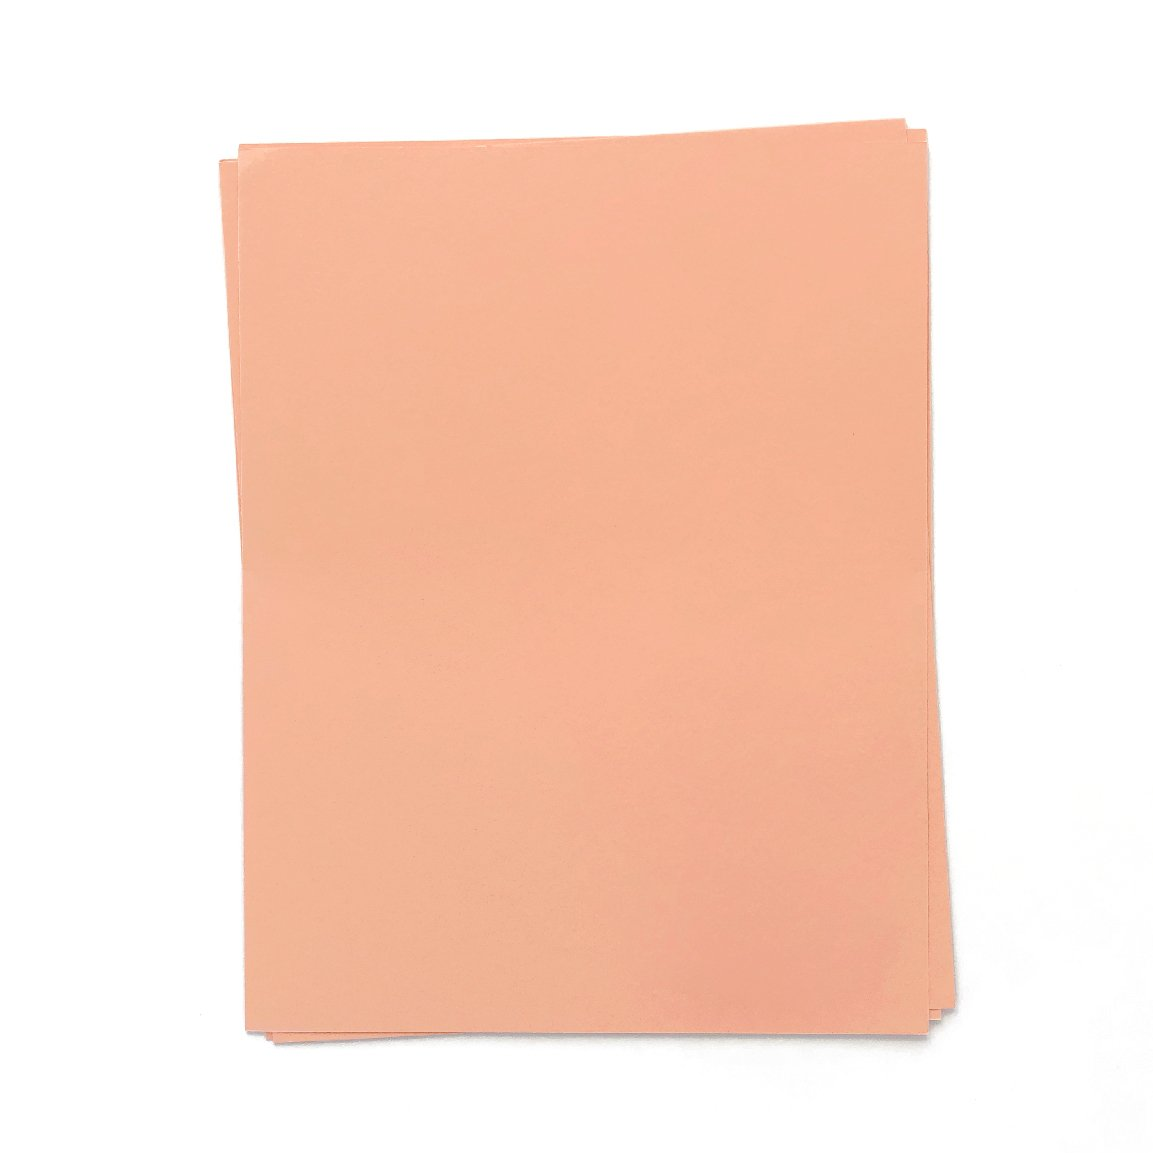 *NEW* - Concord & 9th - GRAPEFRUIT CARDSTOCK